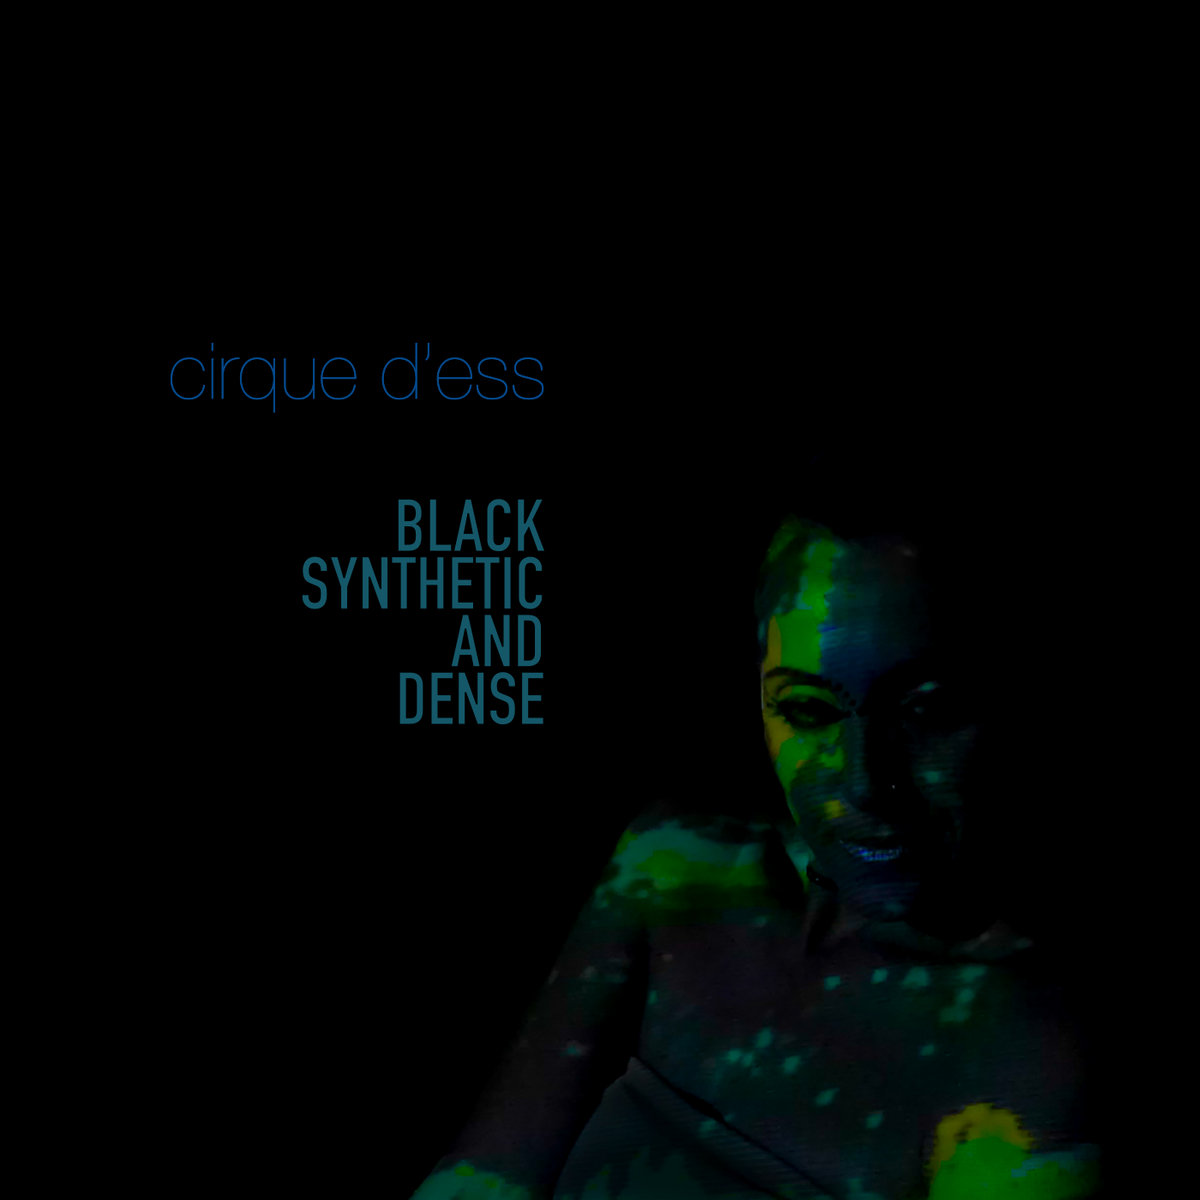 Cirque d'Ess - Black Synthetic And Dense (2021) [FLAC] Download